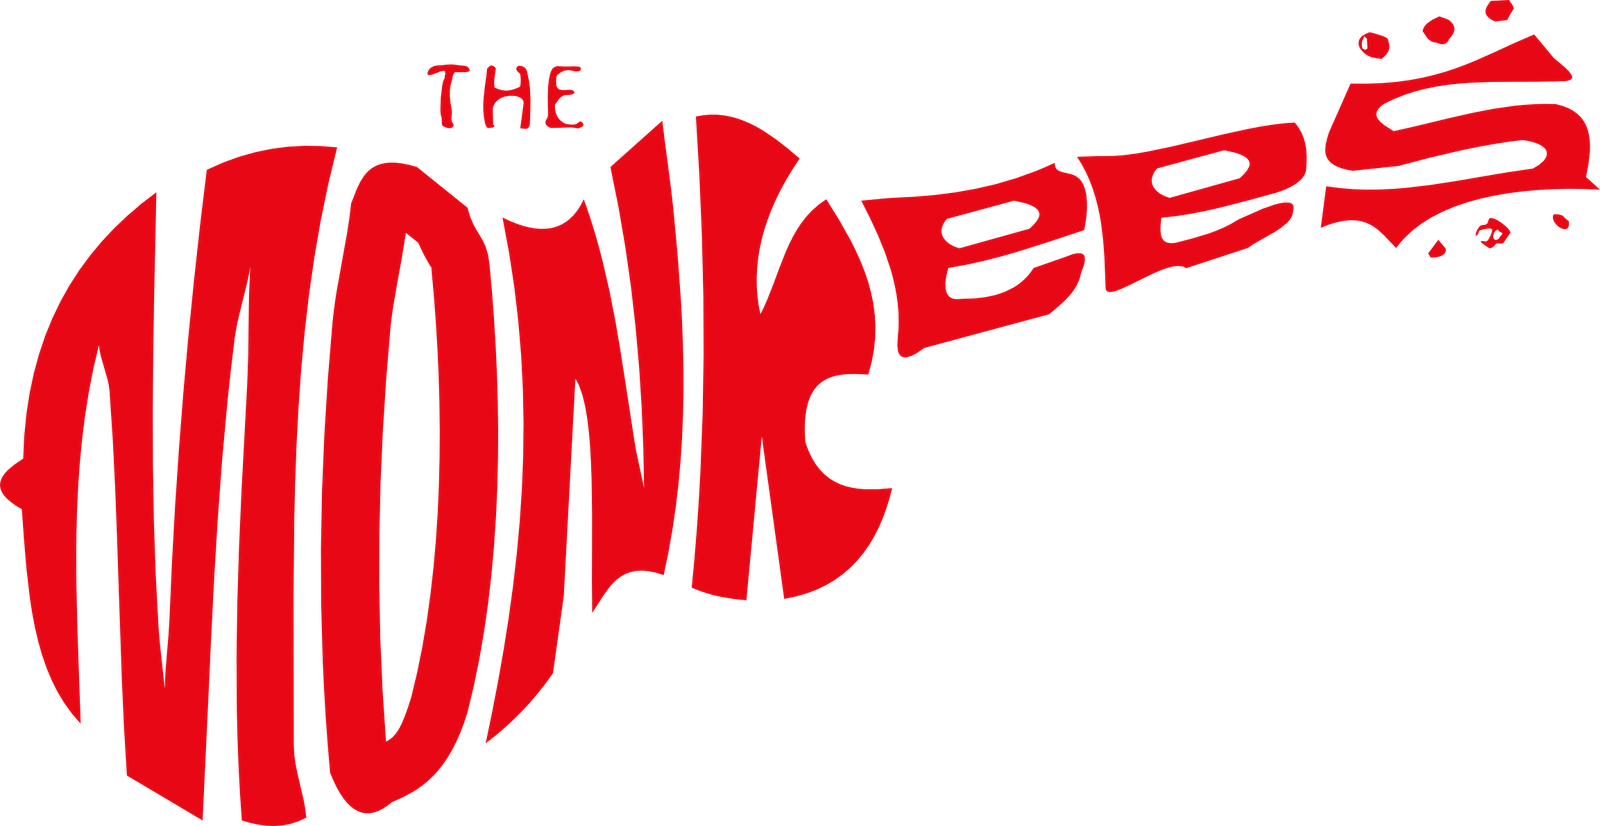 The Monkees logo Pop posters